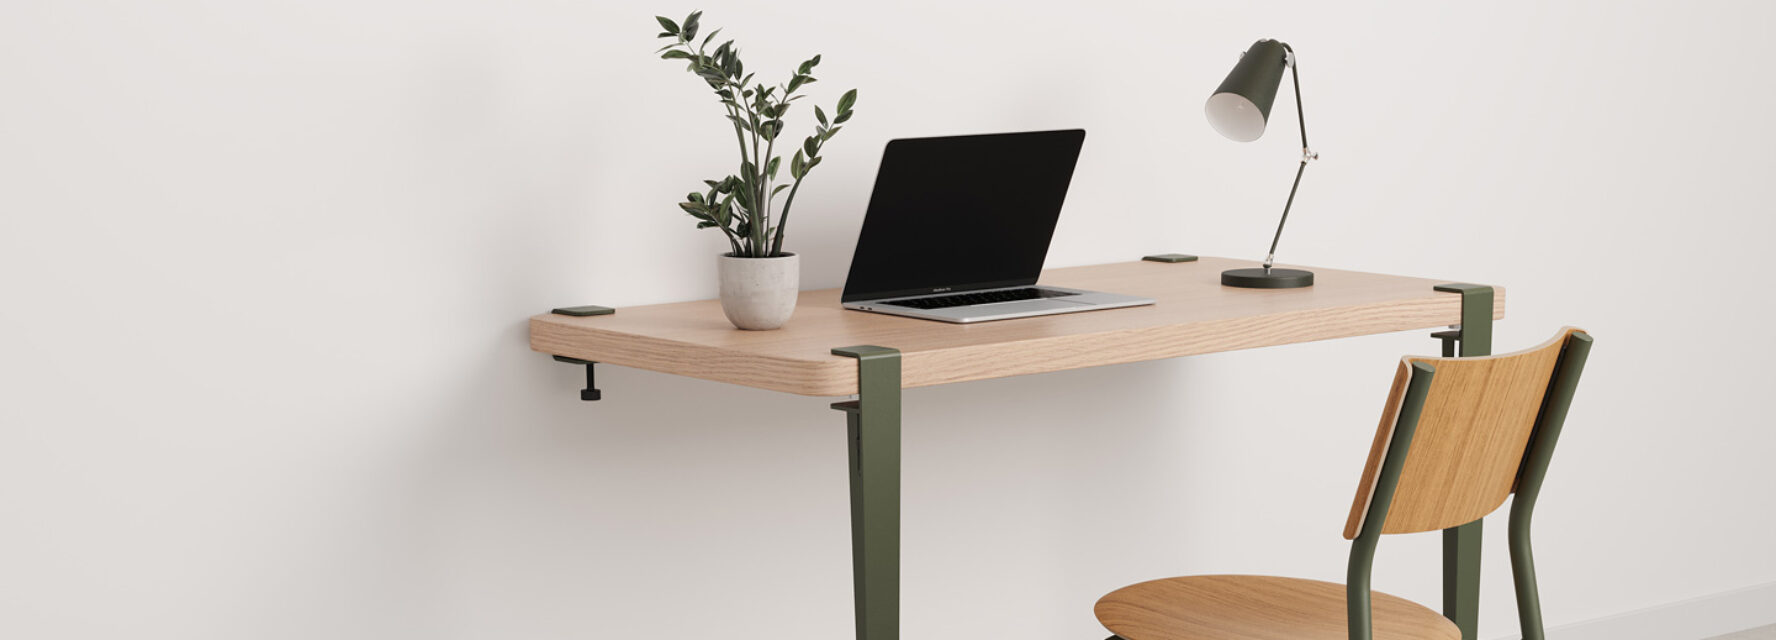 Wall-mounted tables - TIPTOE